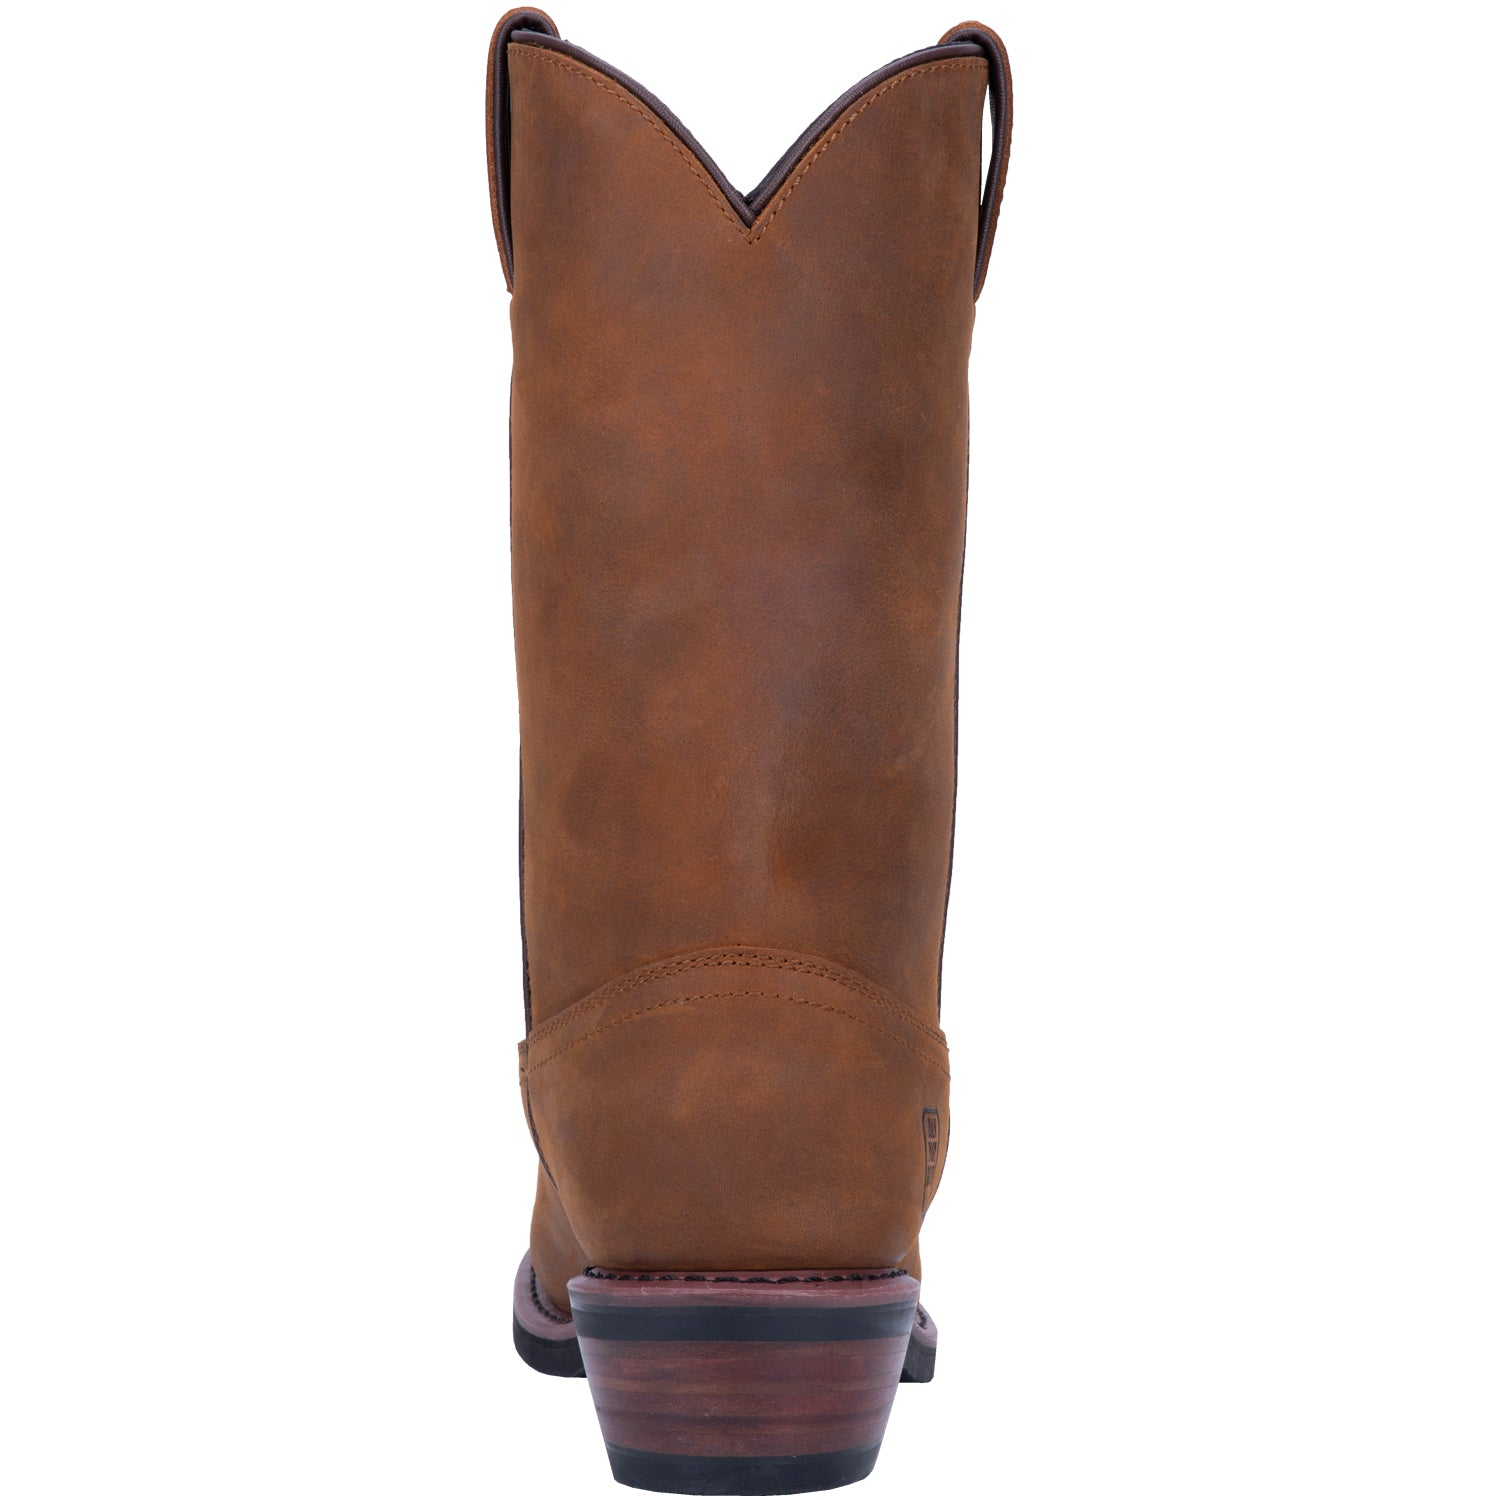 ALBUQUERQUE WATERPROOF LEATHER BOOT 15521805140010